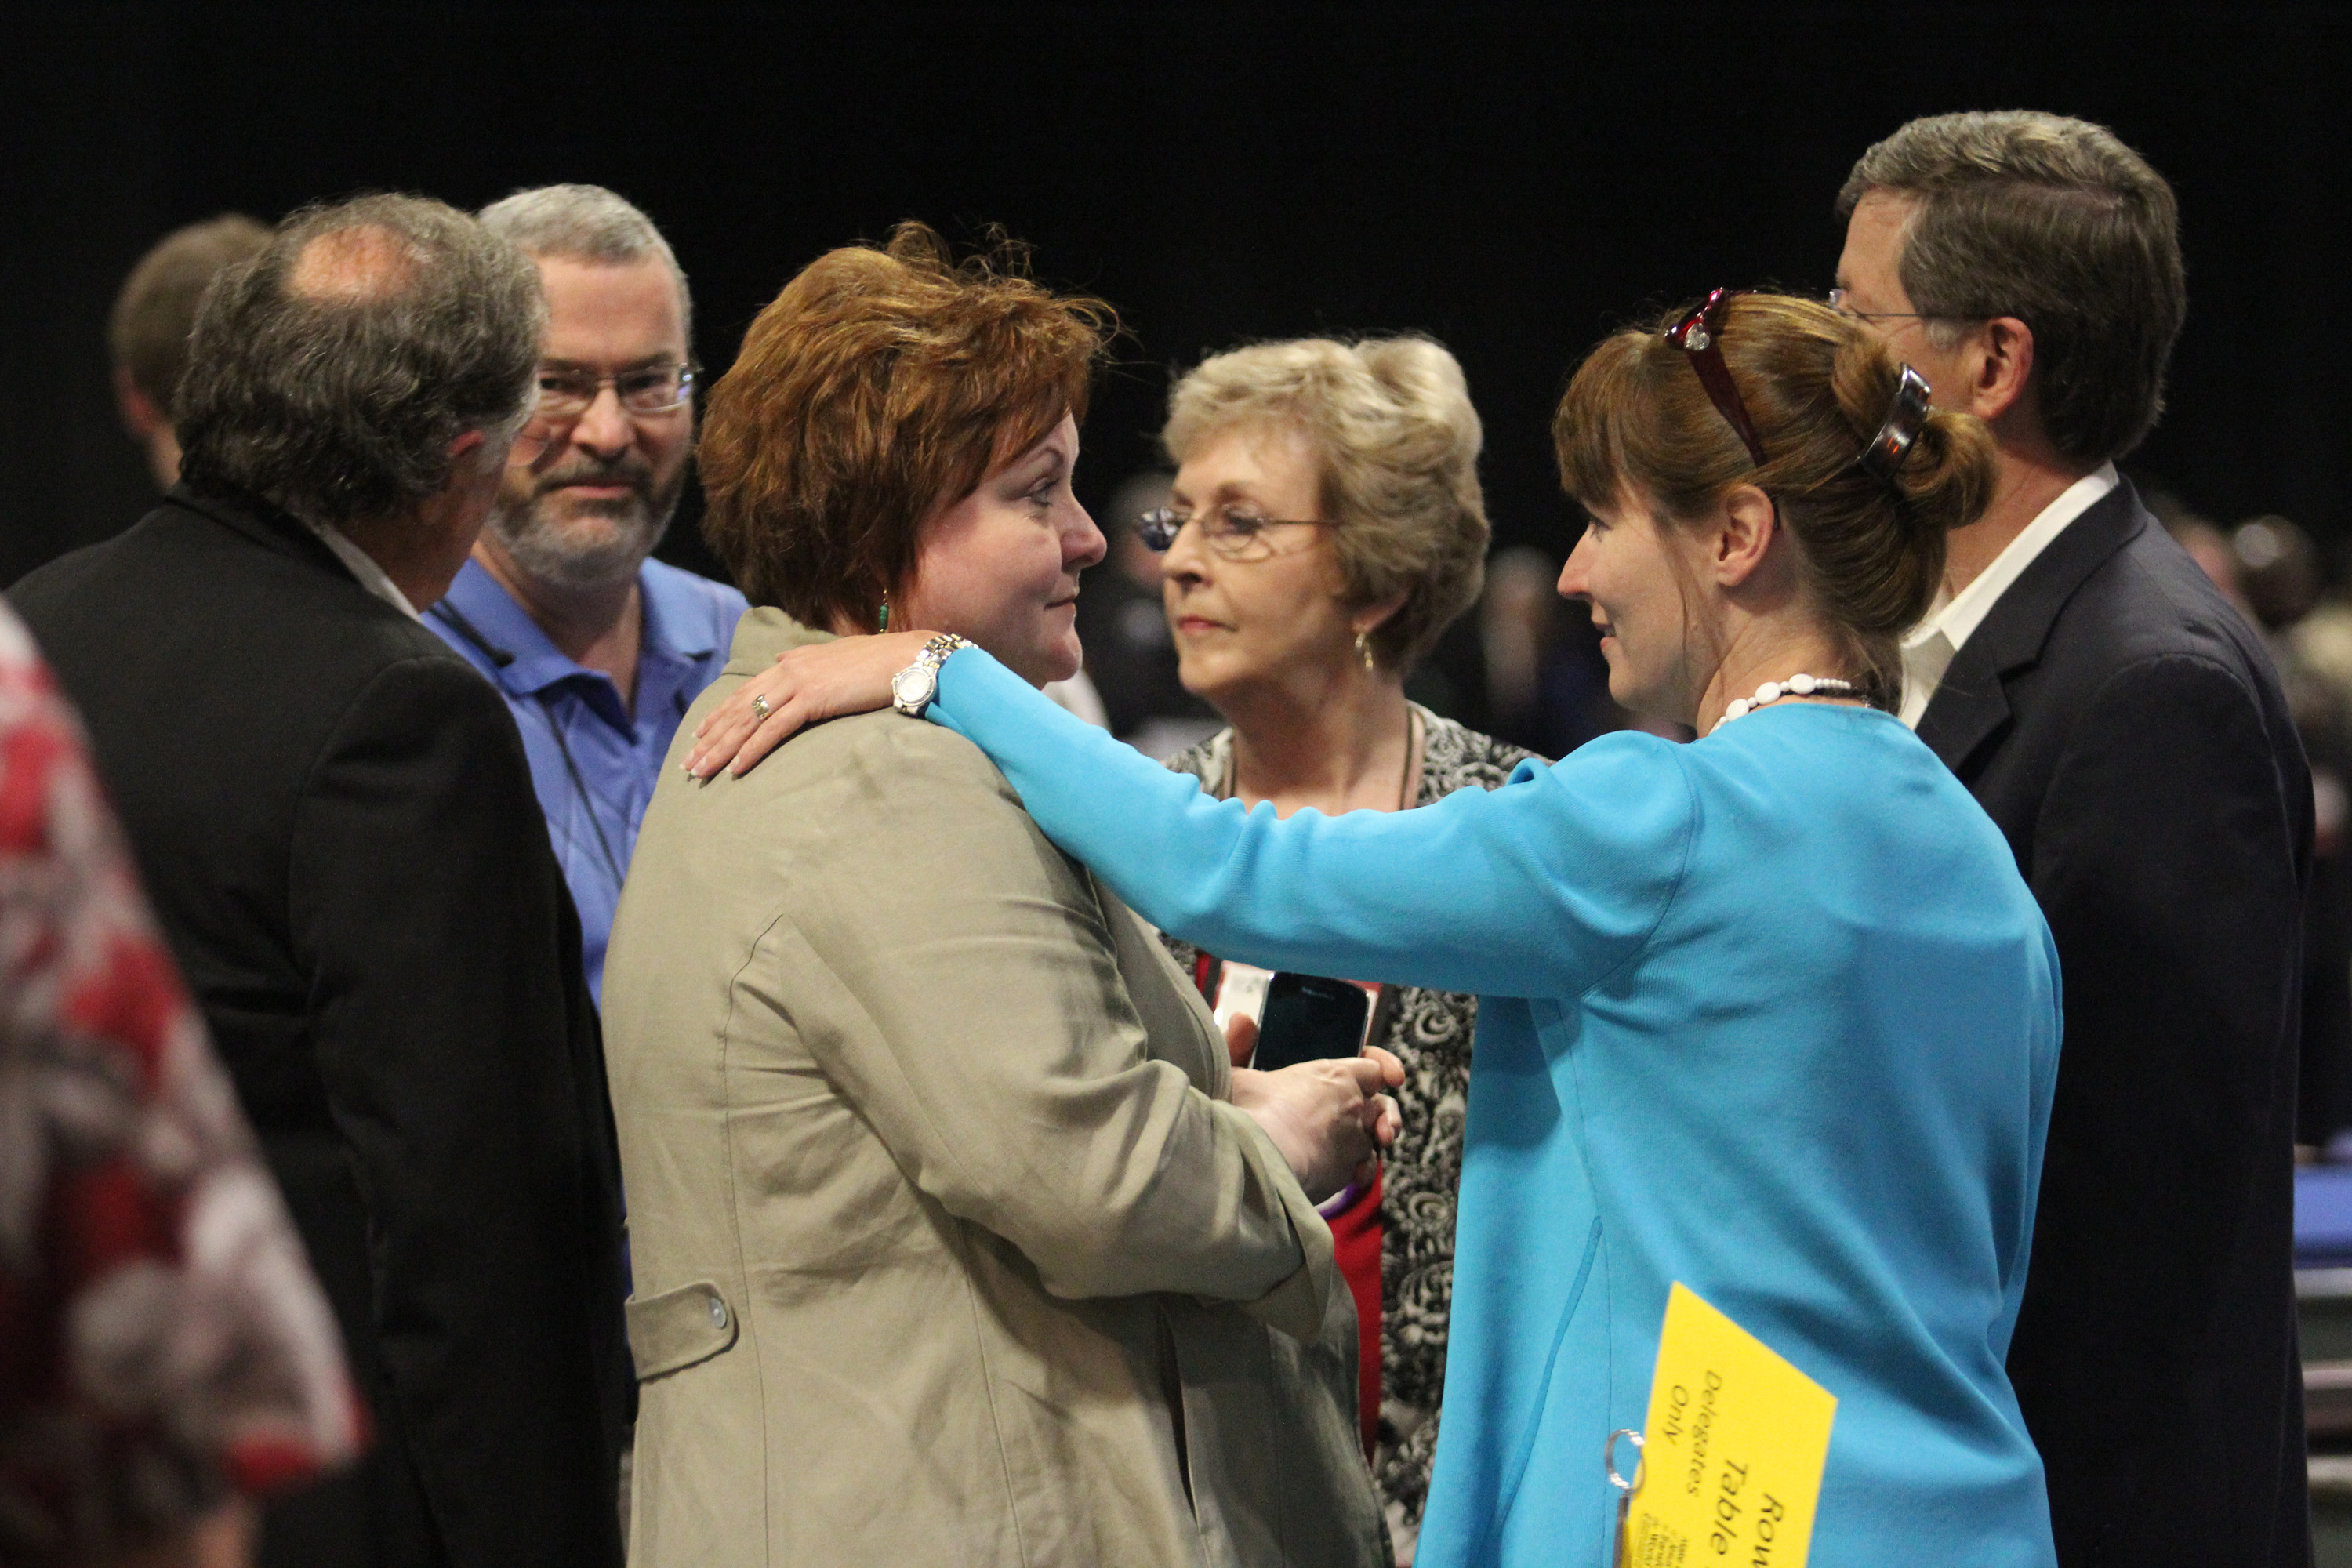 Delegates from the Memphis and Tennessee conferences (from left) David Reed, the Rev. Sky McCracken, Selena Henson, Sandra Burnett, the Rev. Harriett Bryan and the Rev. Randy Cooper, confer with each other at the May 4 plenary of the 2012 United Methodist General Conference in Tampa, Fla. A 2012 file photo by Kathleen Barry, UMNS